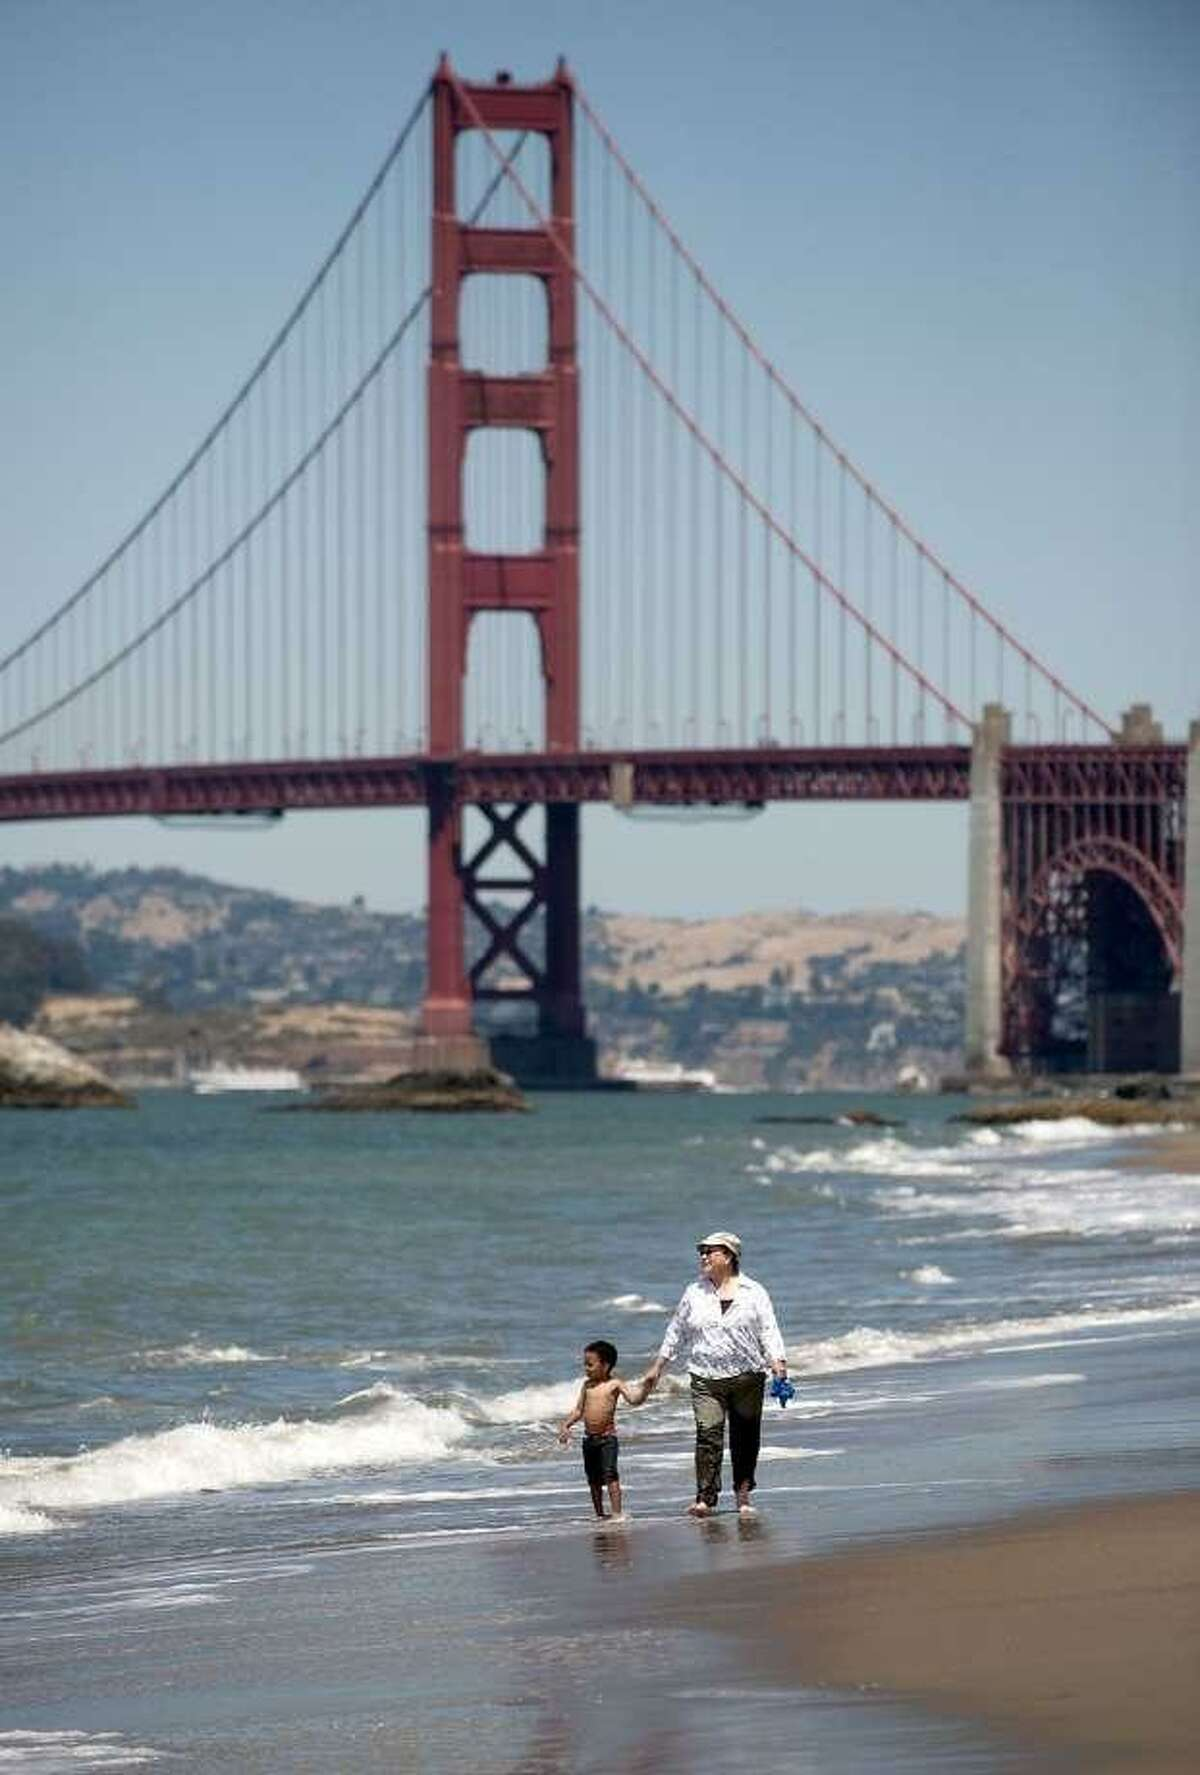 Police identified the woman who drowned in Baker Beach Thursday as a 40-year-old woman from Rhode Island. People walk on Baker Beach in San Francisco, Calif., on July 28, 2010. On Thursday afternoon, a woman drowned in the waters off the beach in the Presidio, officials said.